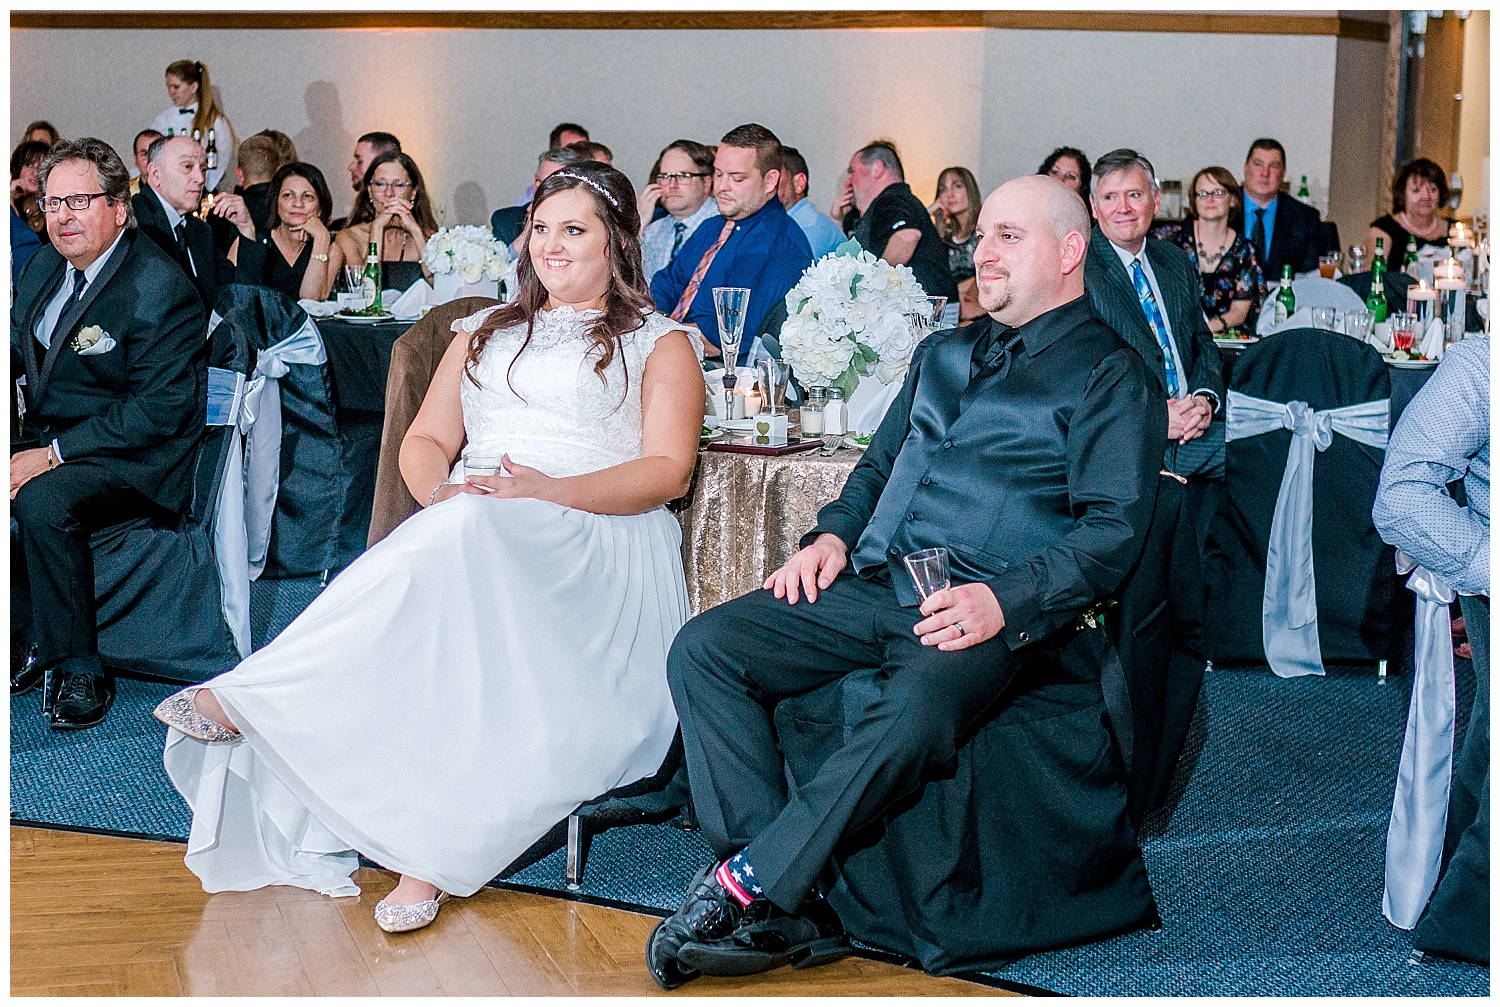 A Black and Gold Catholic Church Wedding in Wilkes Barre Pennsylvania by lehigh valley pennsylvania based wedding and lifestyle photographer Jeannie Lytle of Lytle Photography   Company (50).jpg